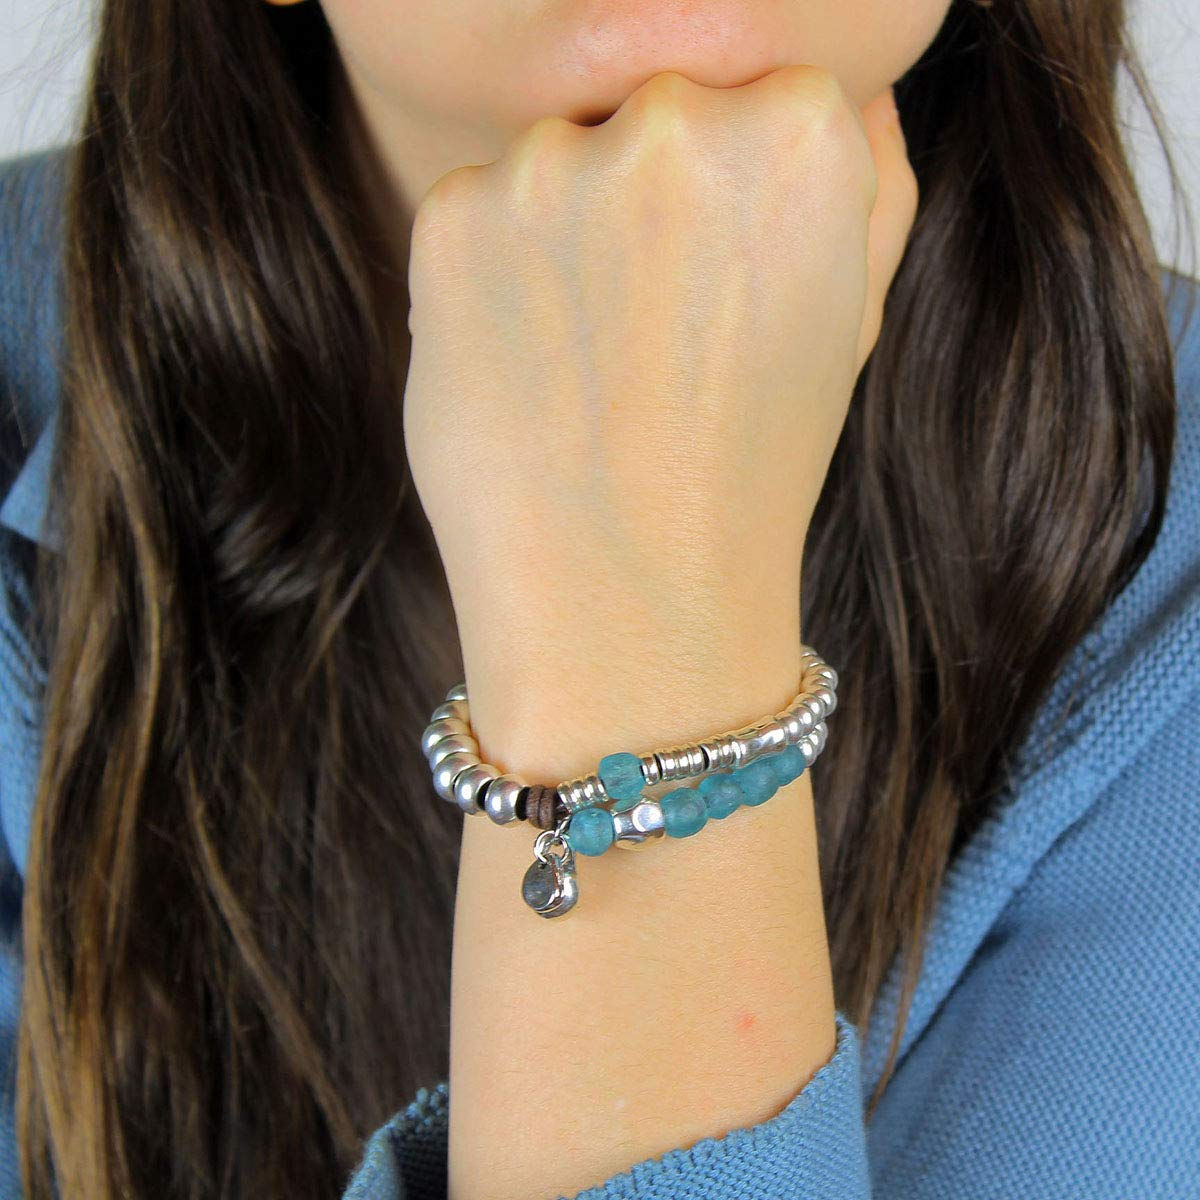 handmade by Intendenciajewels Womens leather bracelets African recycled glass bracelet ADJUSTABLE SIZE TO 6,3-7// 16-19 cm. leather and plated beads Boho jewelry